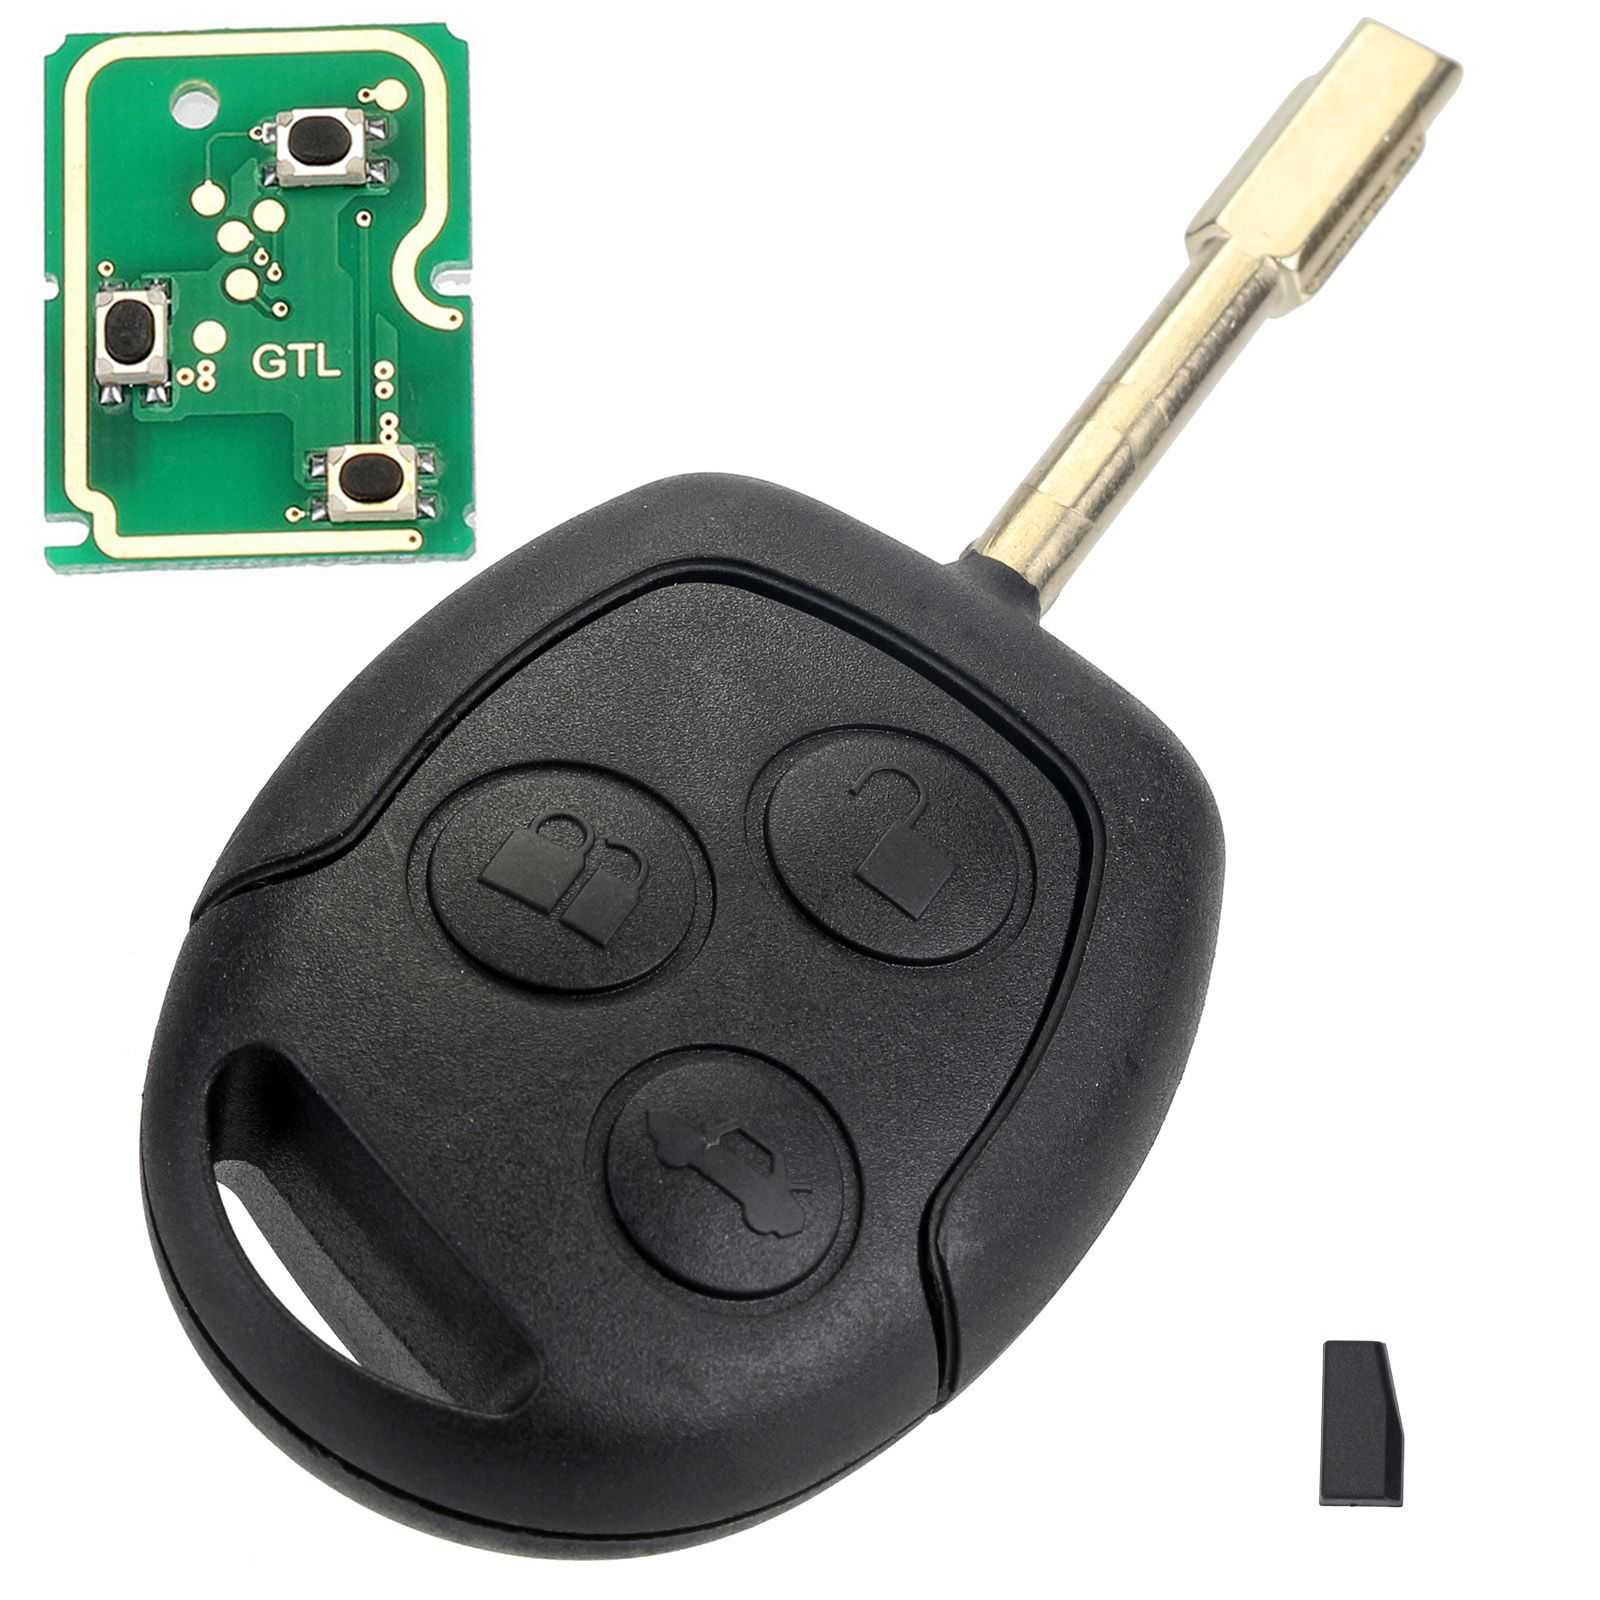 4d60 Remote Key Shell Case 433mhz Chip Car Key Replacement For